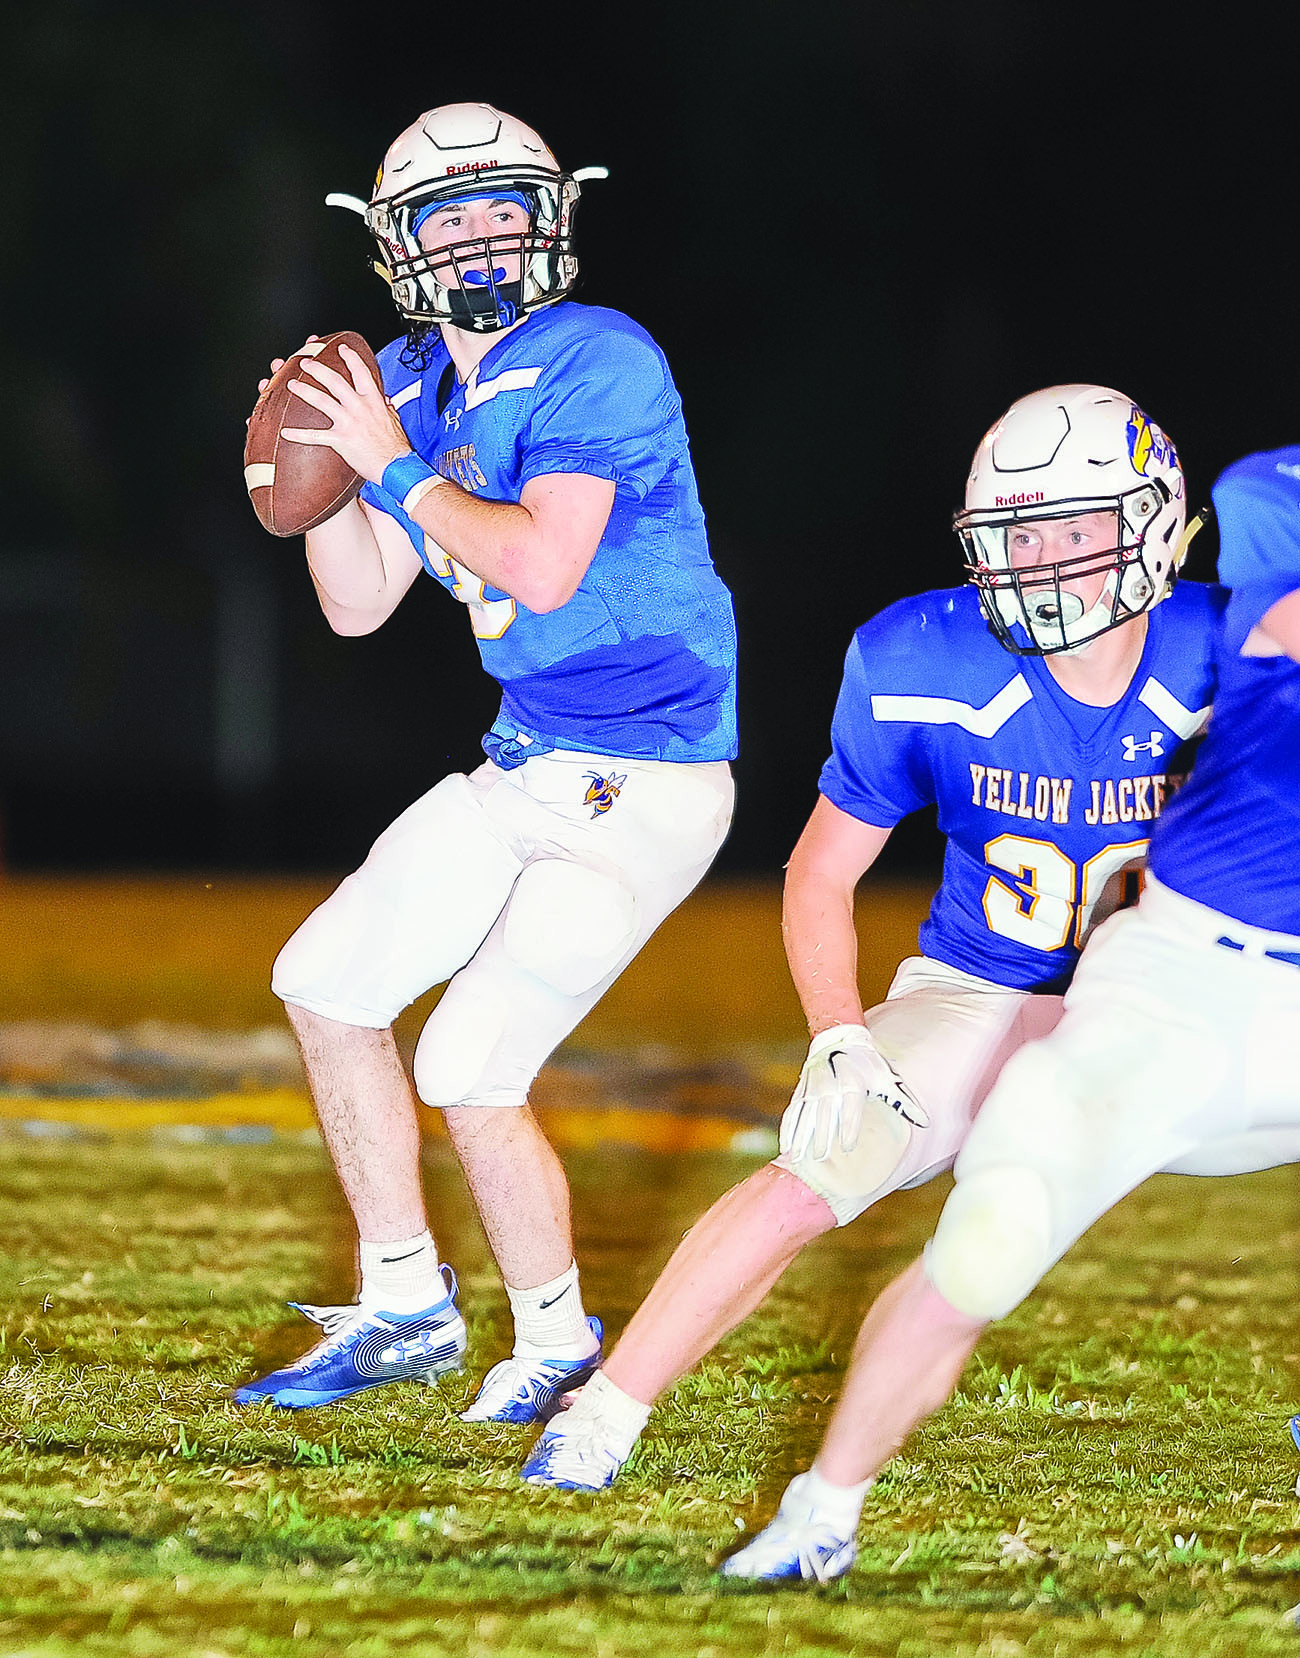 Curry's Luke Smith looks to pass against Oakman on Friday night. Smith competed 13 of 25 passes for 103 yards with a touchdown and an interception in Curry's 17-14 victory.